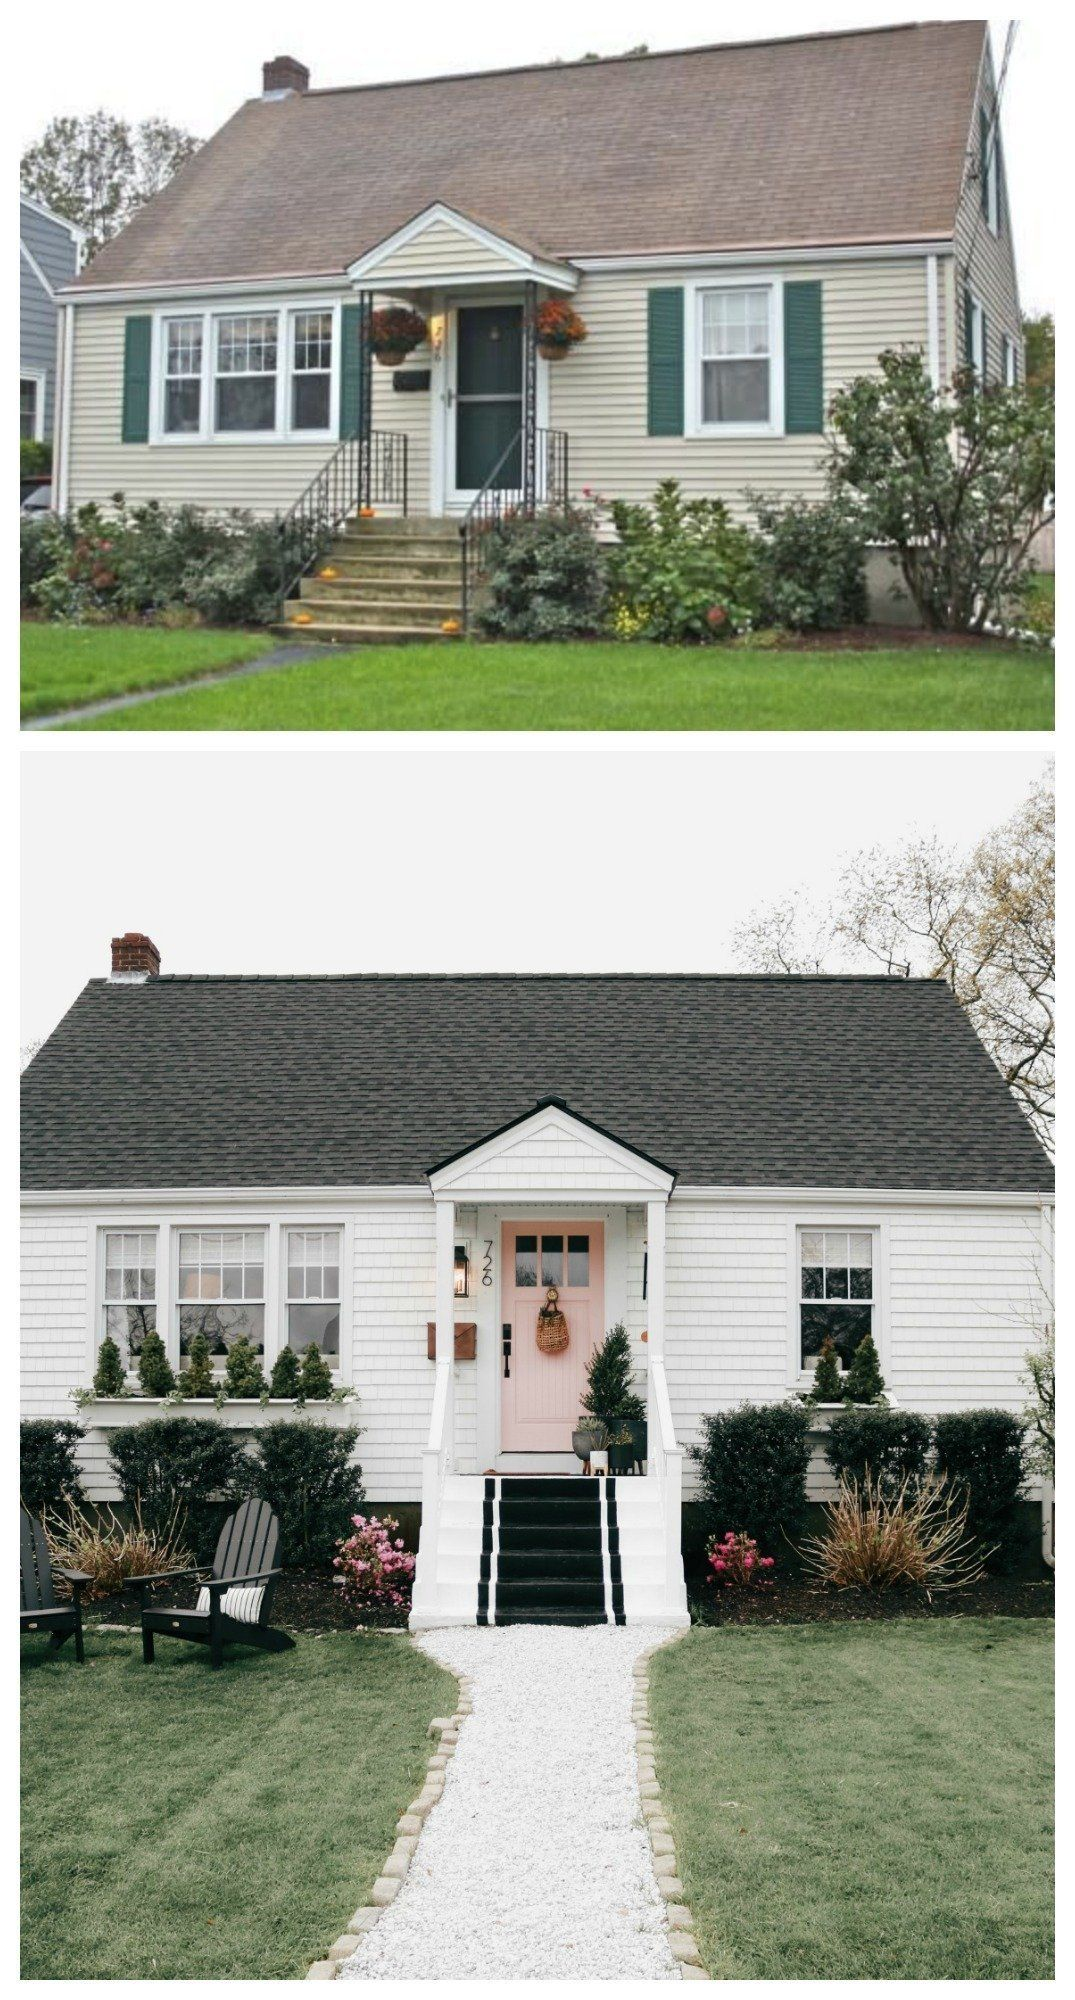 Exterior Curb Appeal-New Roof and Back Door - Nesting With Grace | Home exterior makeover, House exterior, House makeovers